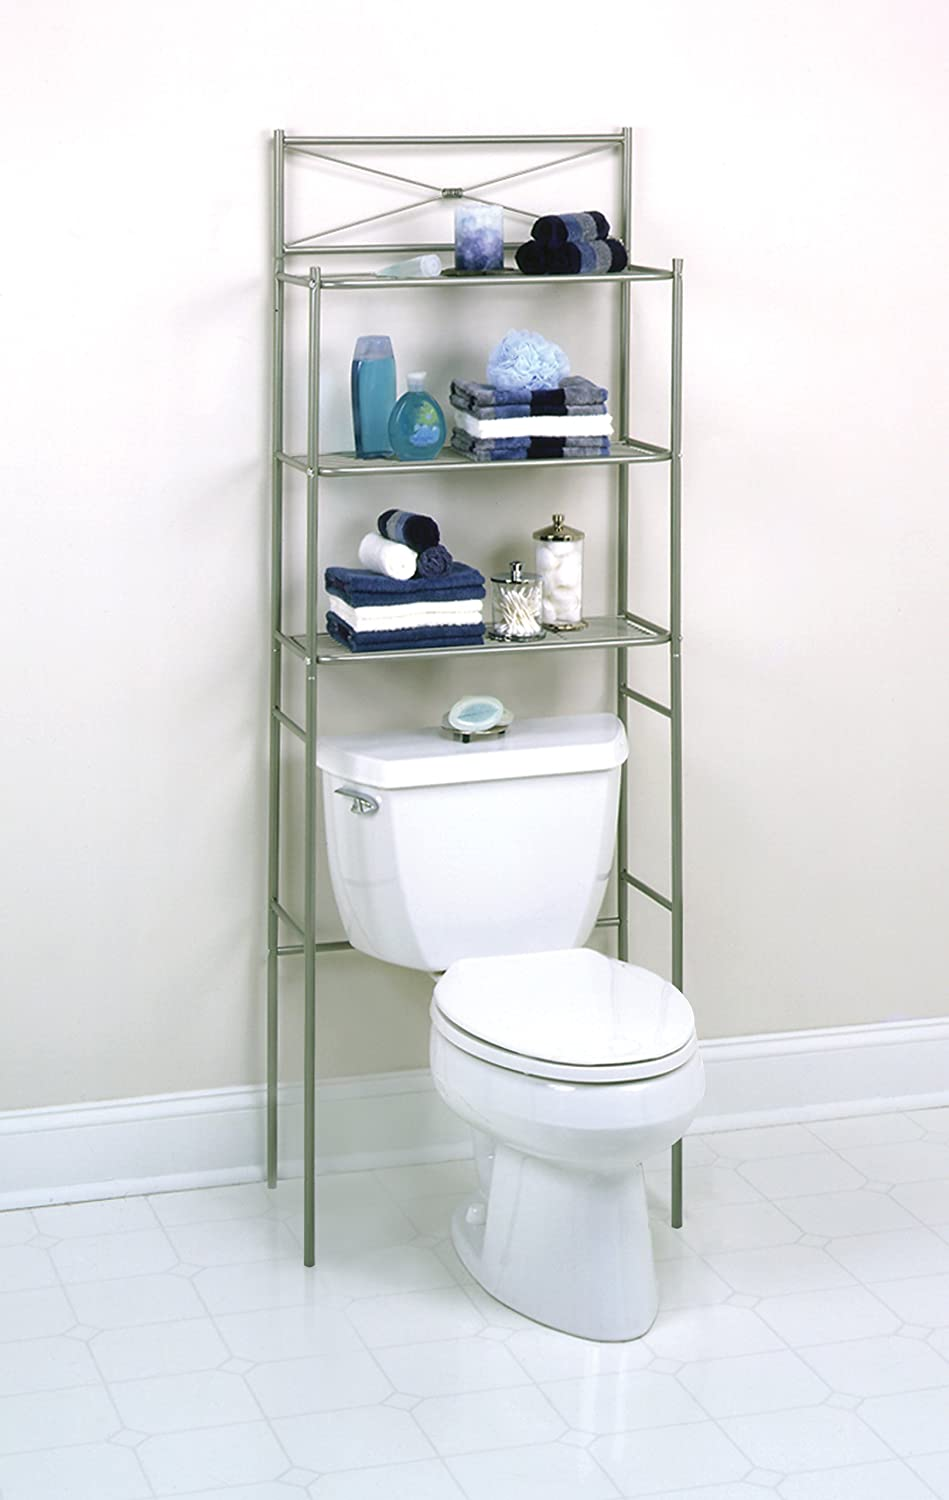 zenith bathstyles spacesaver bathroom storage over the On bathroom organizer shelf